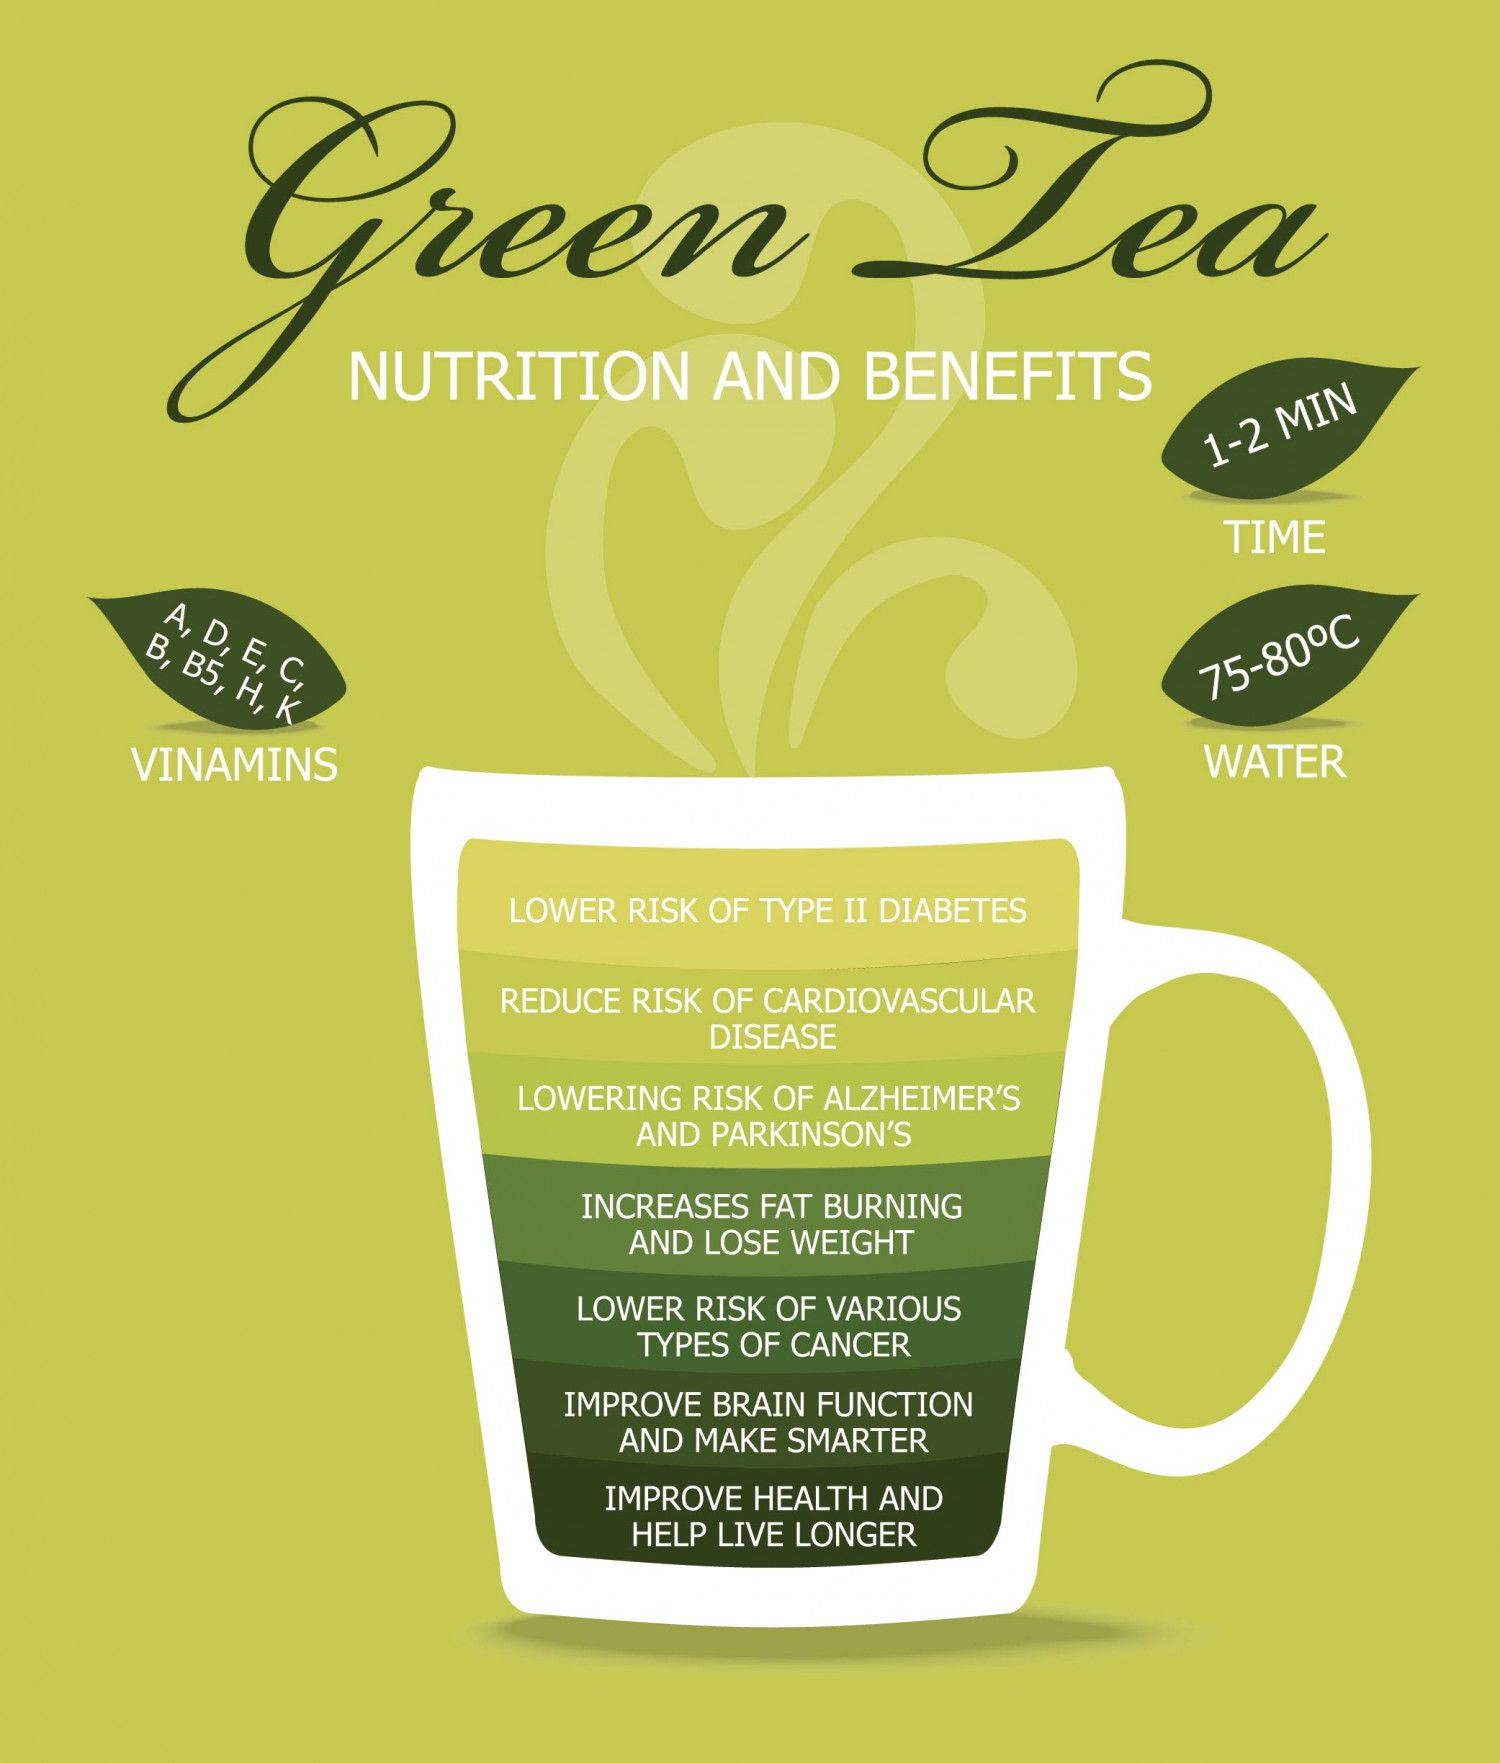 Just Some Reasons to Drink Green Tea Infographic Green